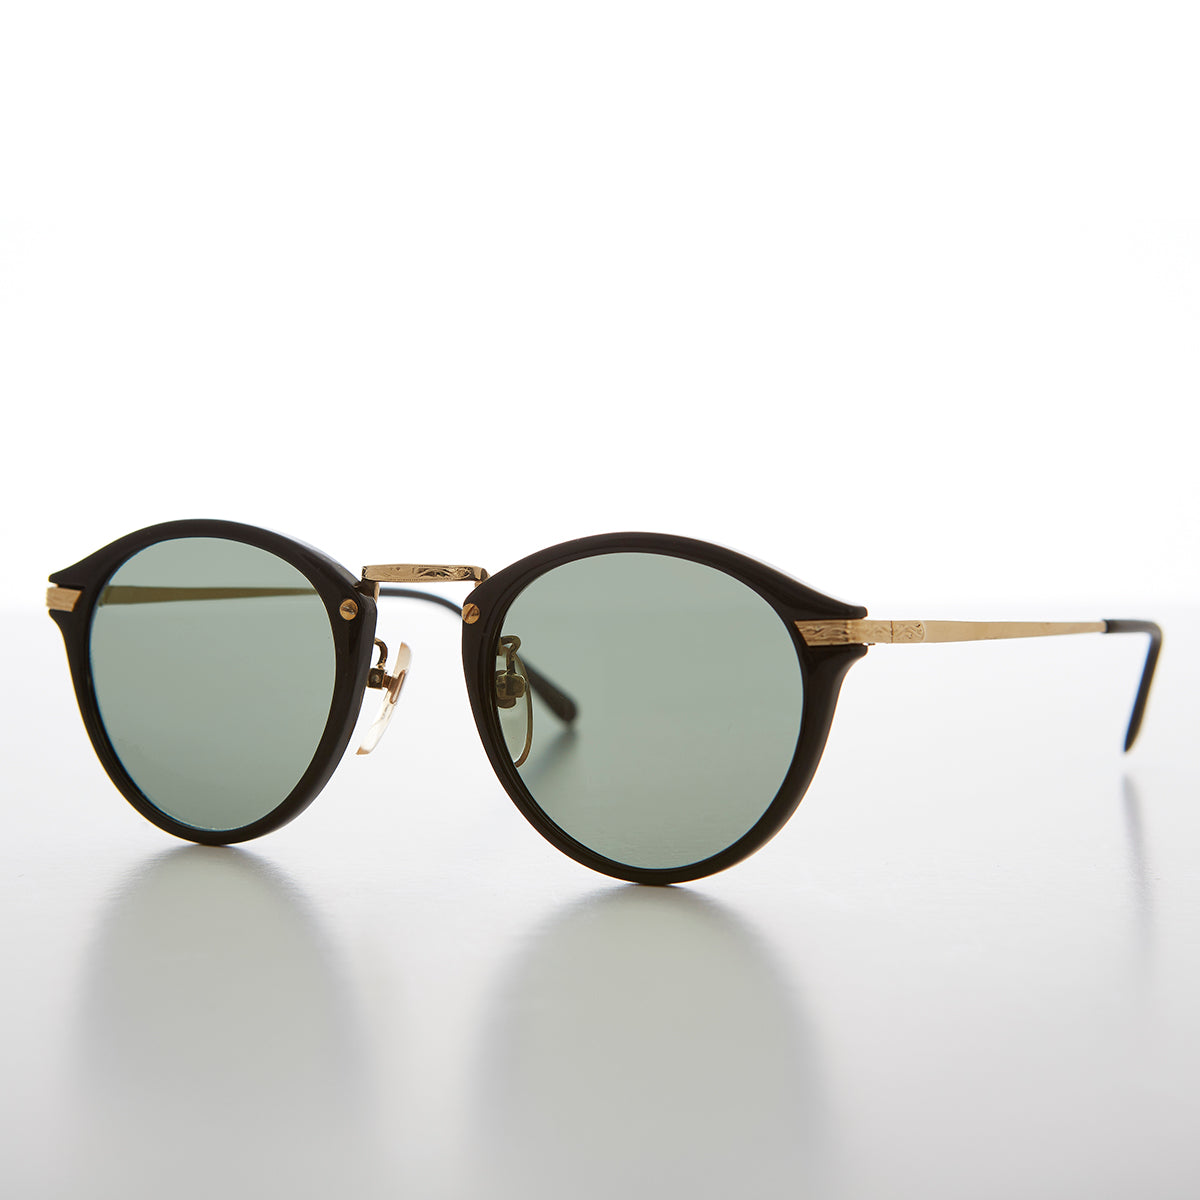 Round P3 Vintage Sunglass with Gold Temples and Bridge